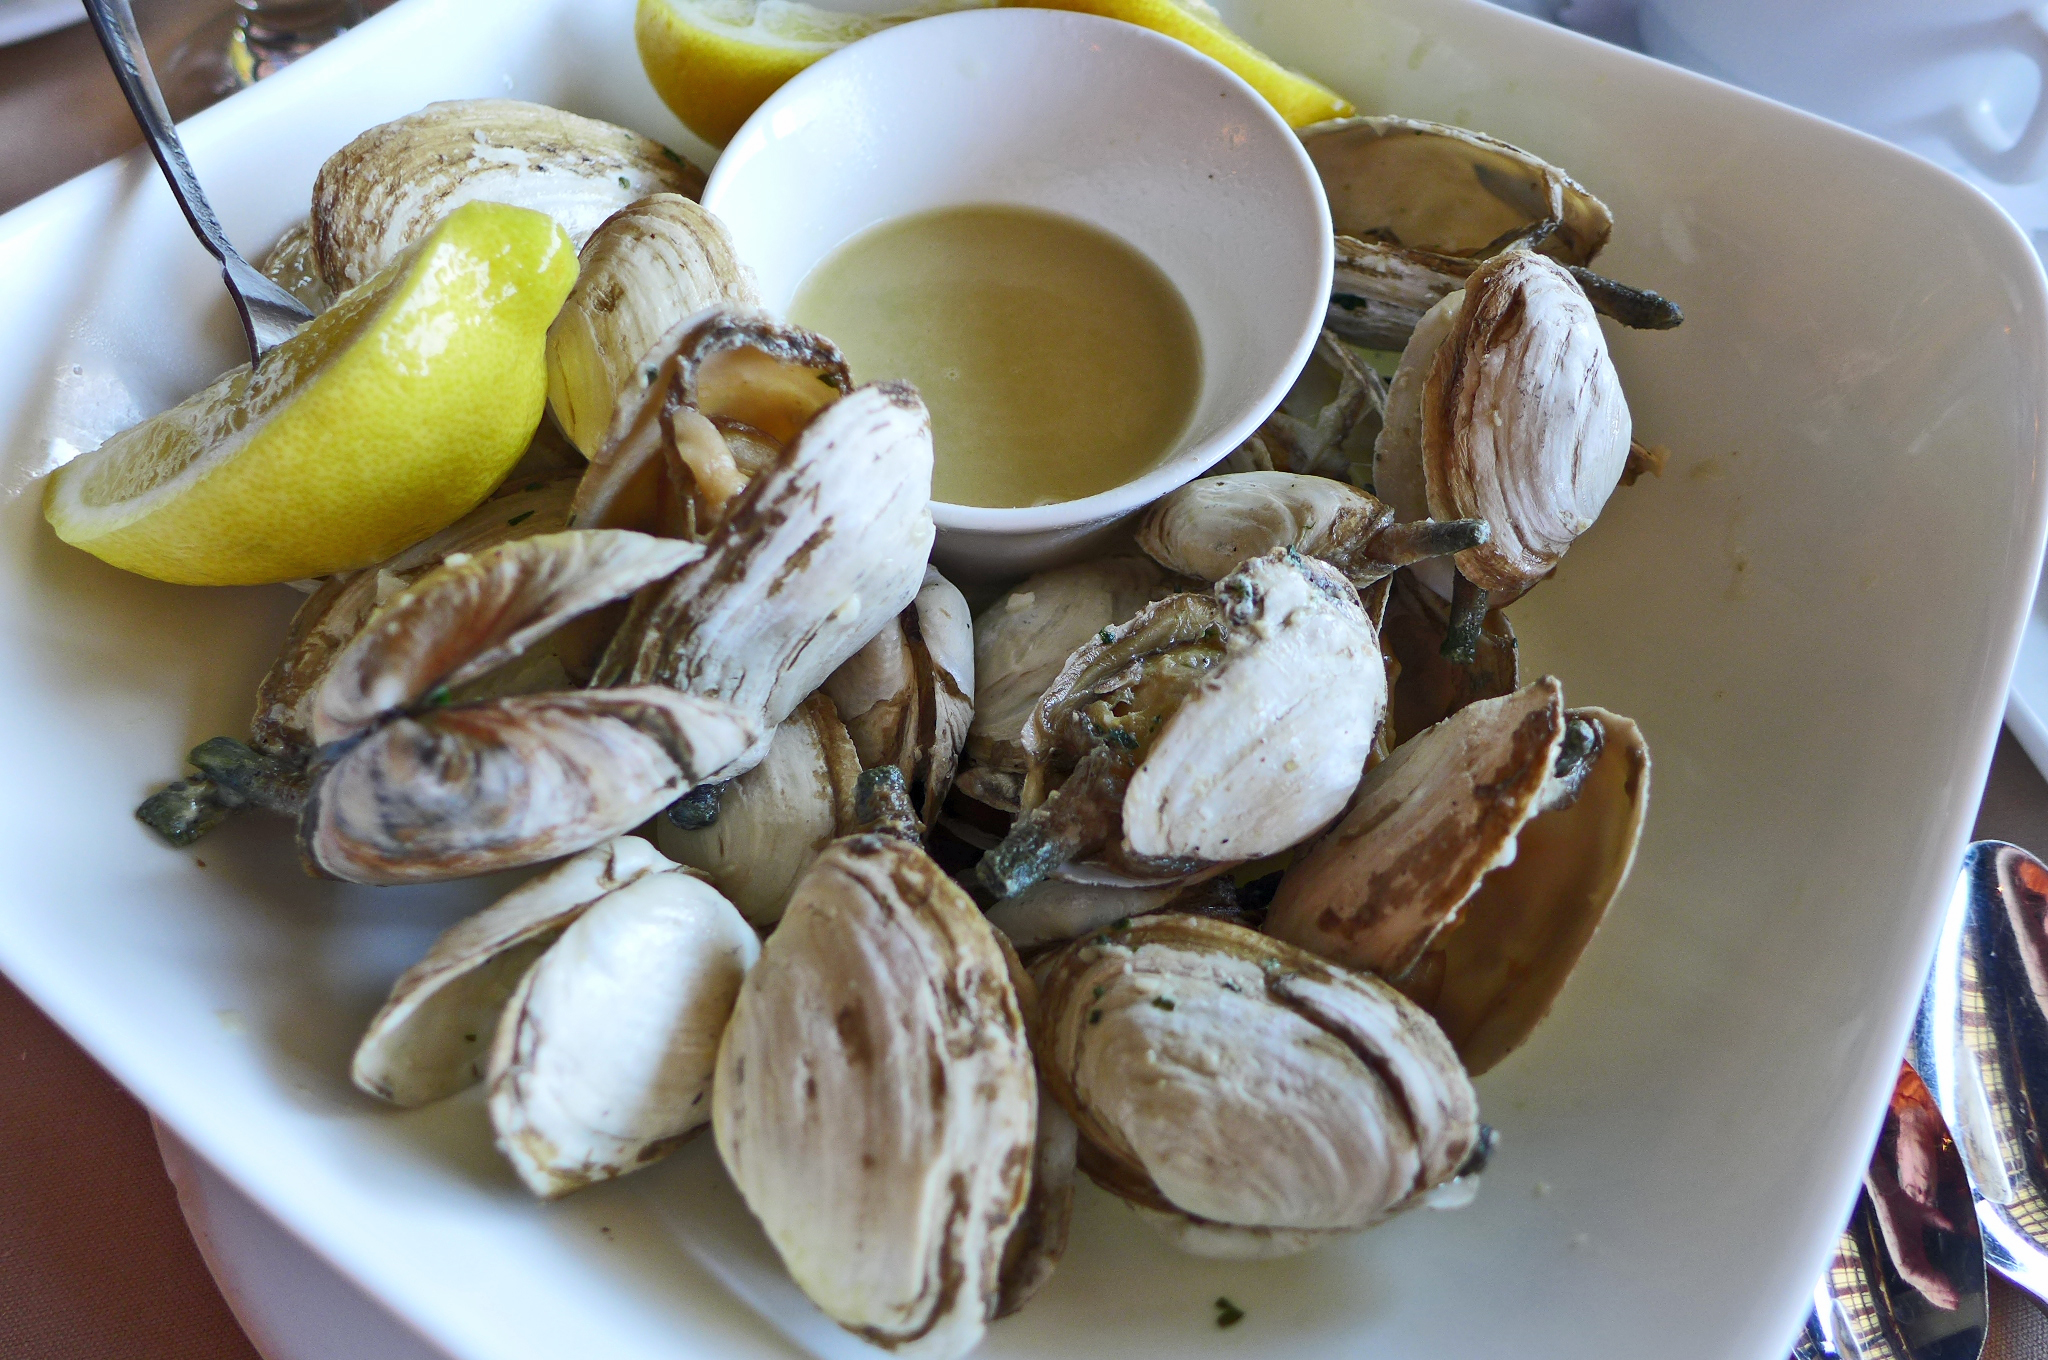 Steamed clams in a square bowl with lemon wedges.